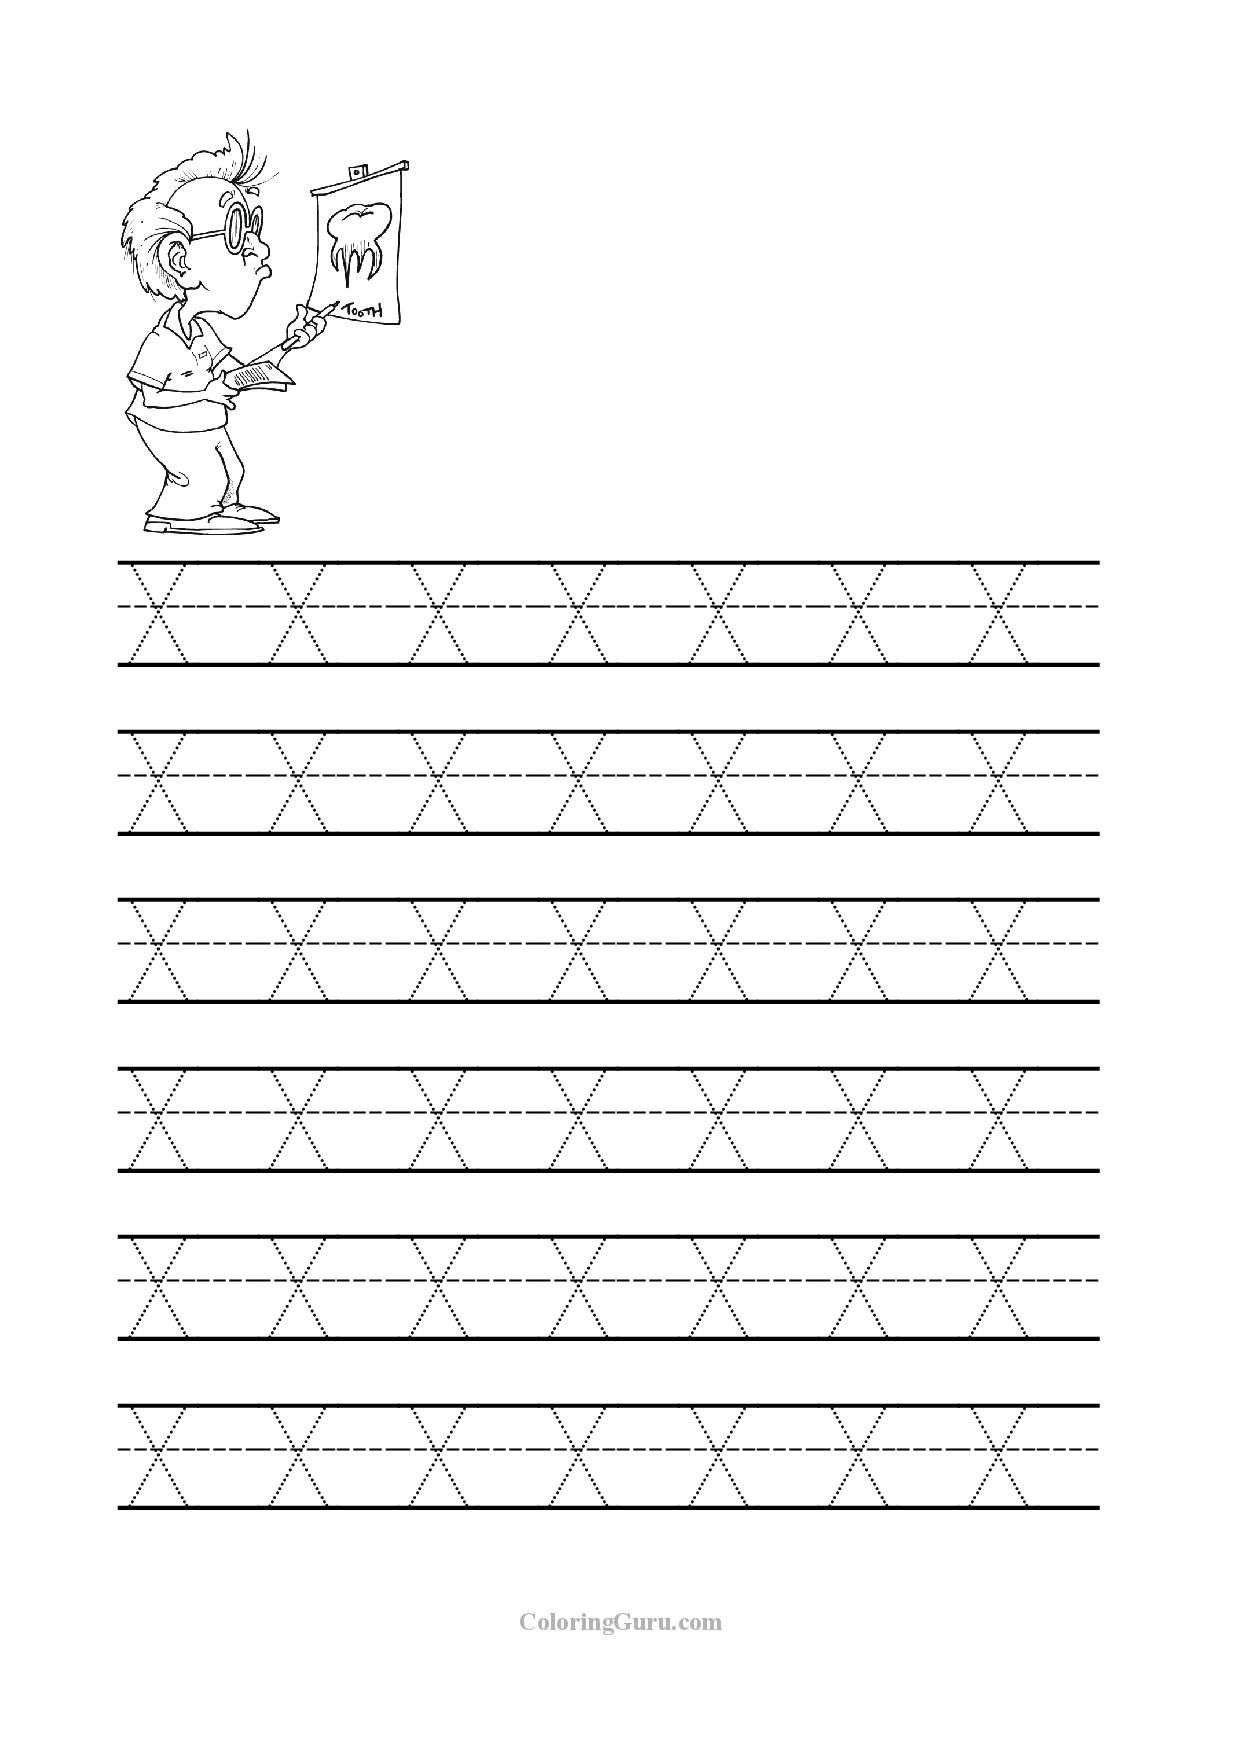 Free Printable Tracing Letter X Worksheets For Preschool for Letter X Worksheets Printable